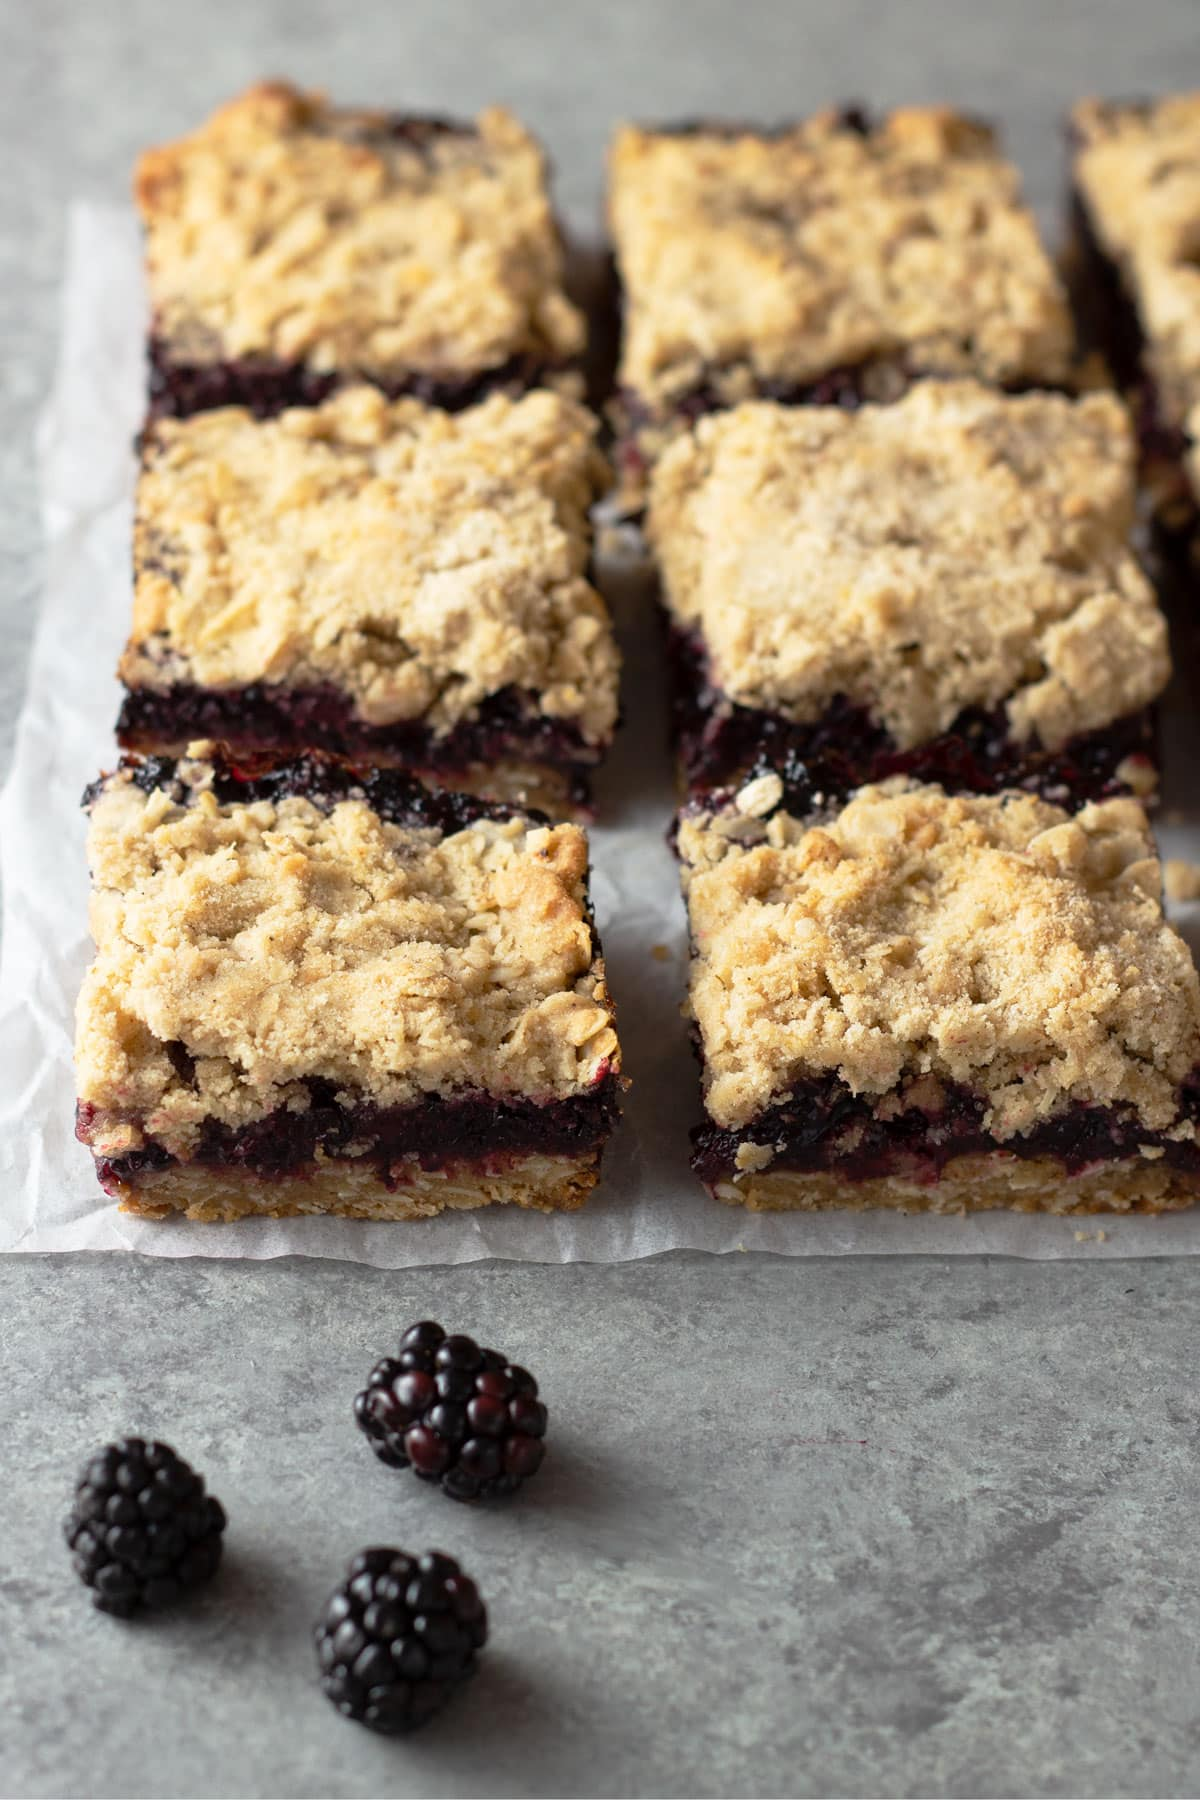 Angled view of a group of squares of blackberry bars on parchment on a grey surface.